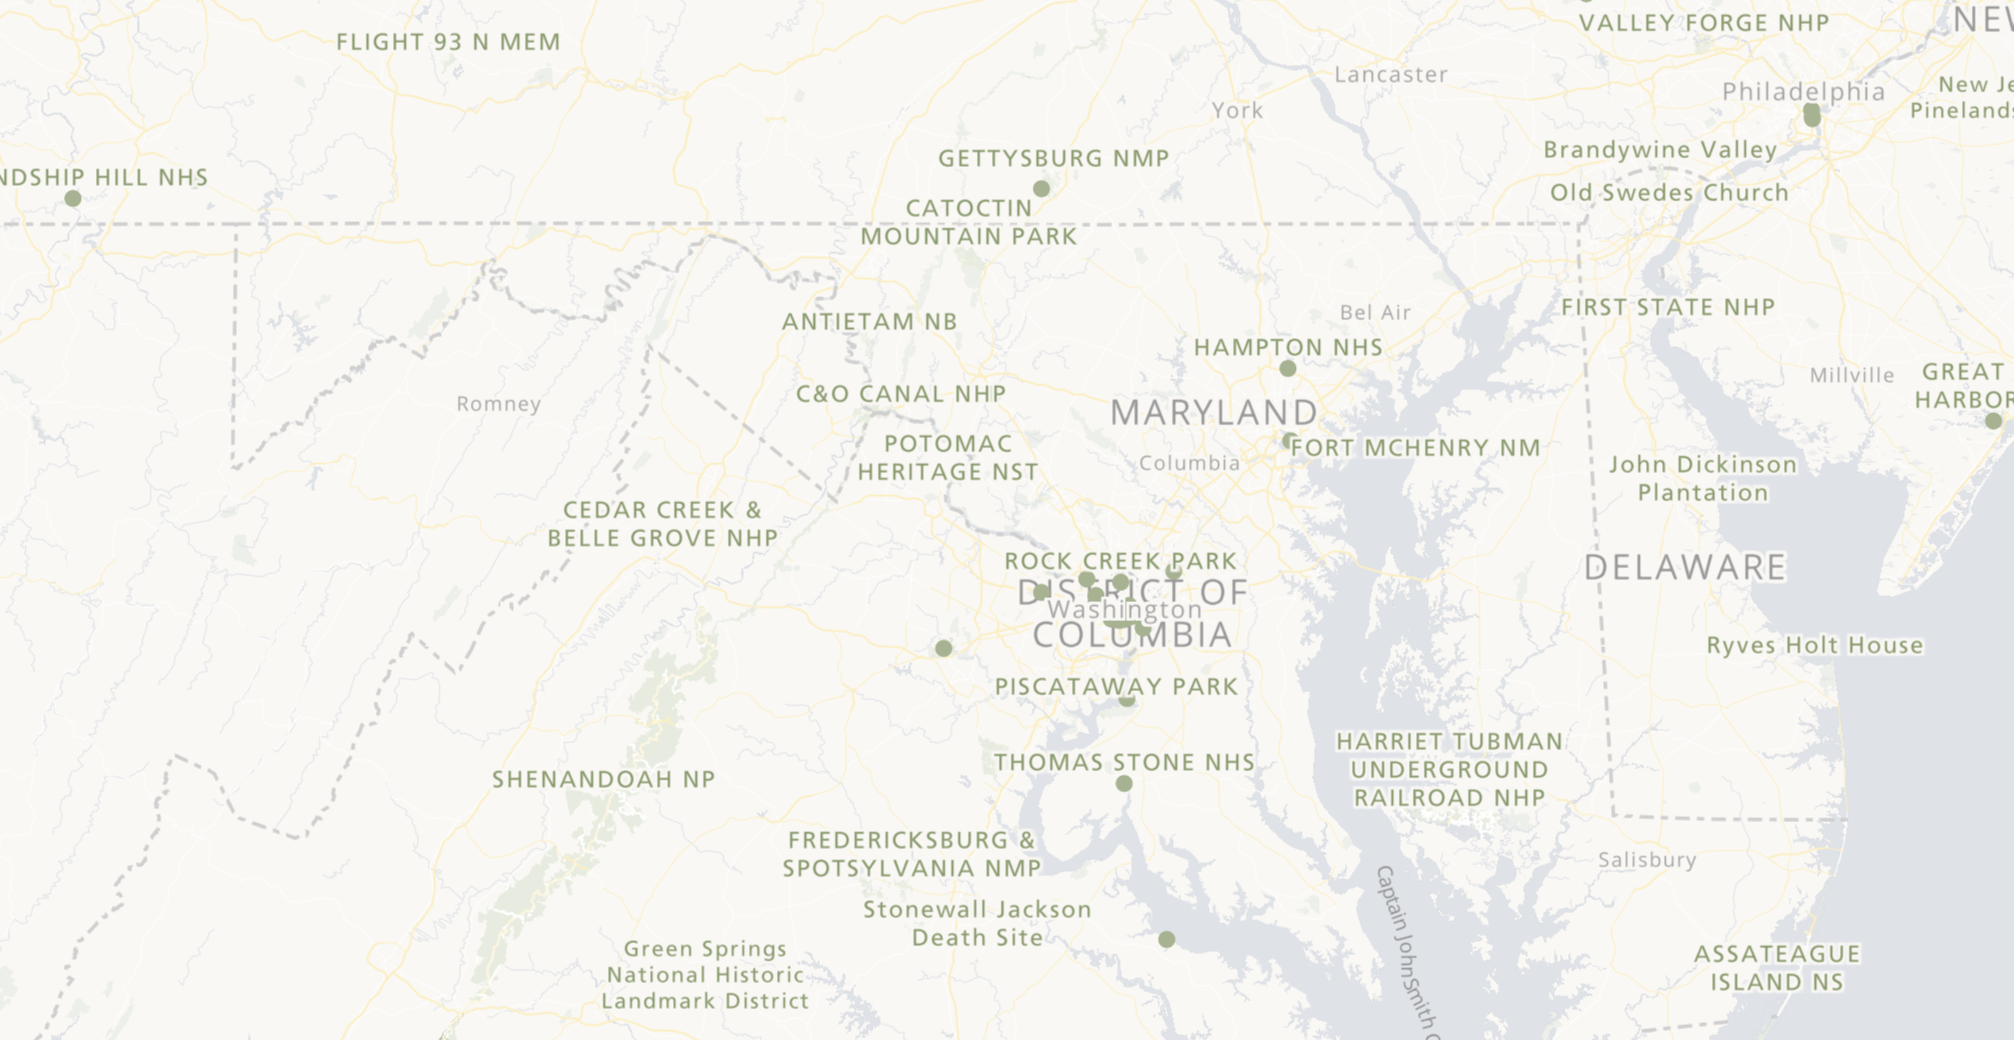 National Register of Historic Places Interactive Map